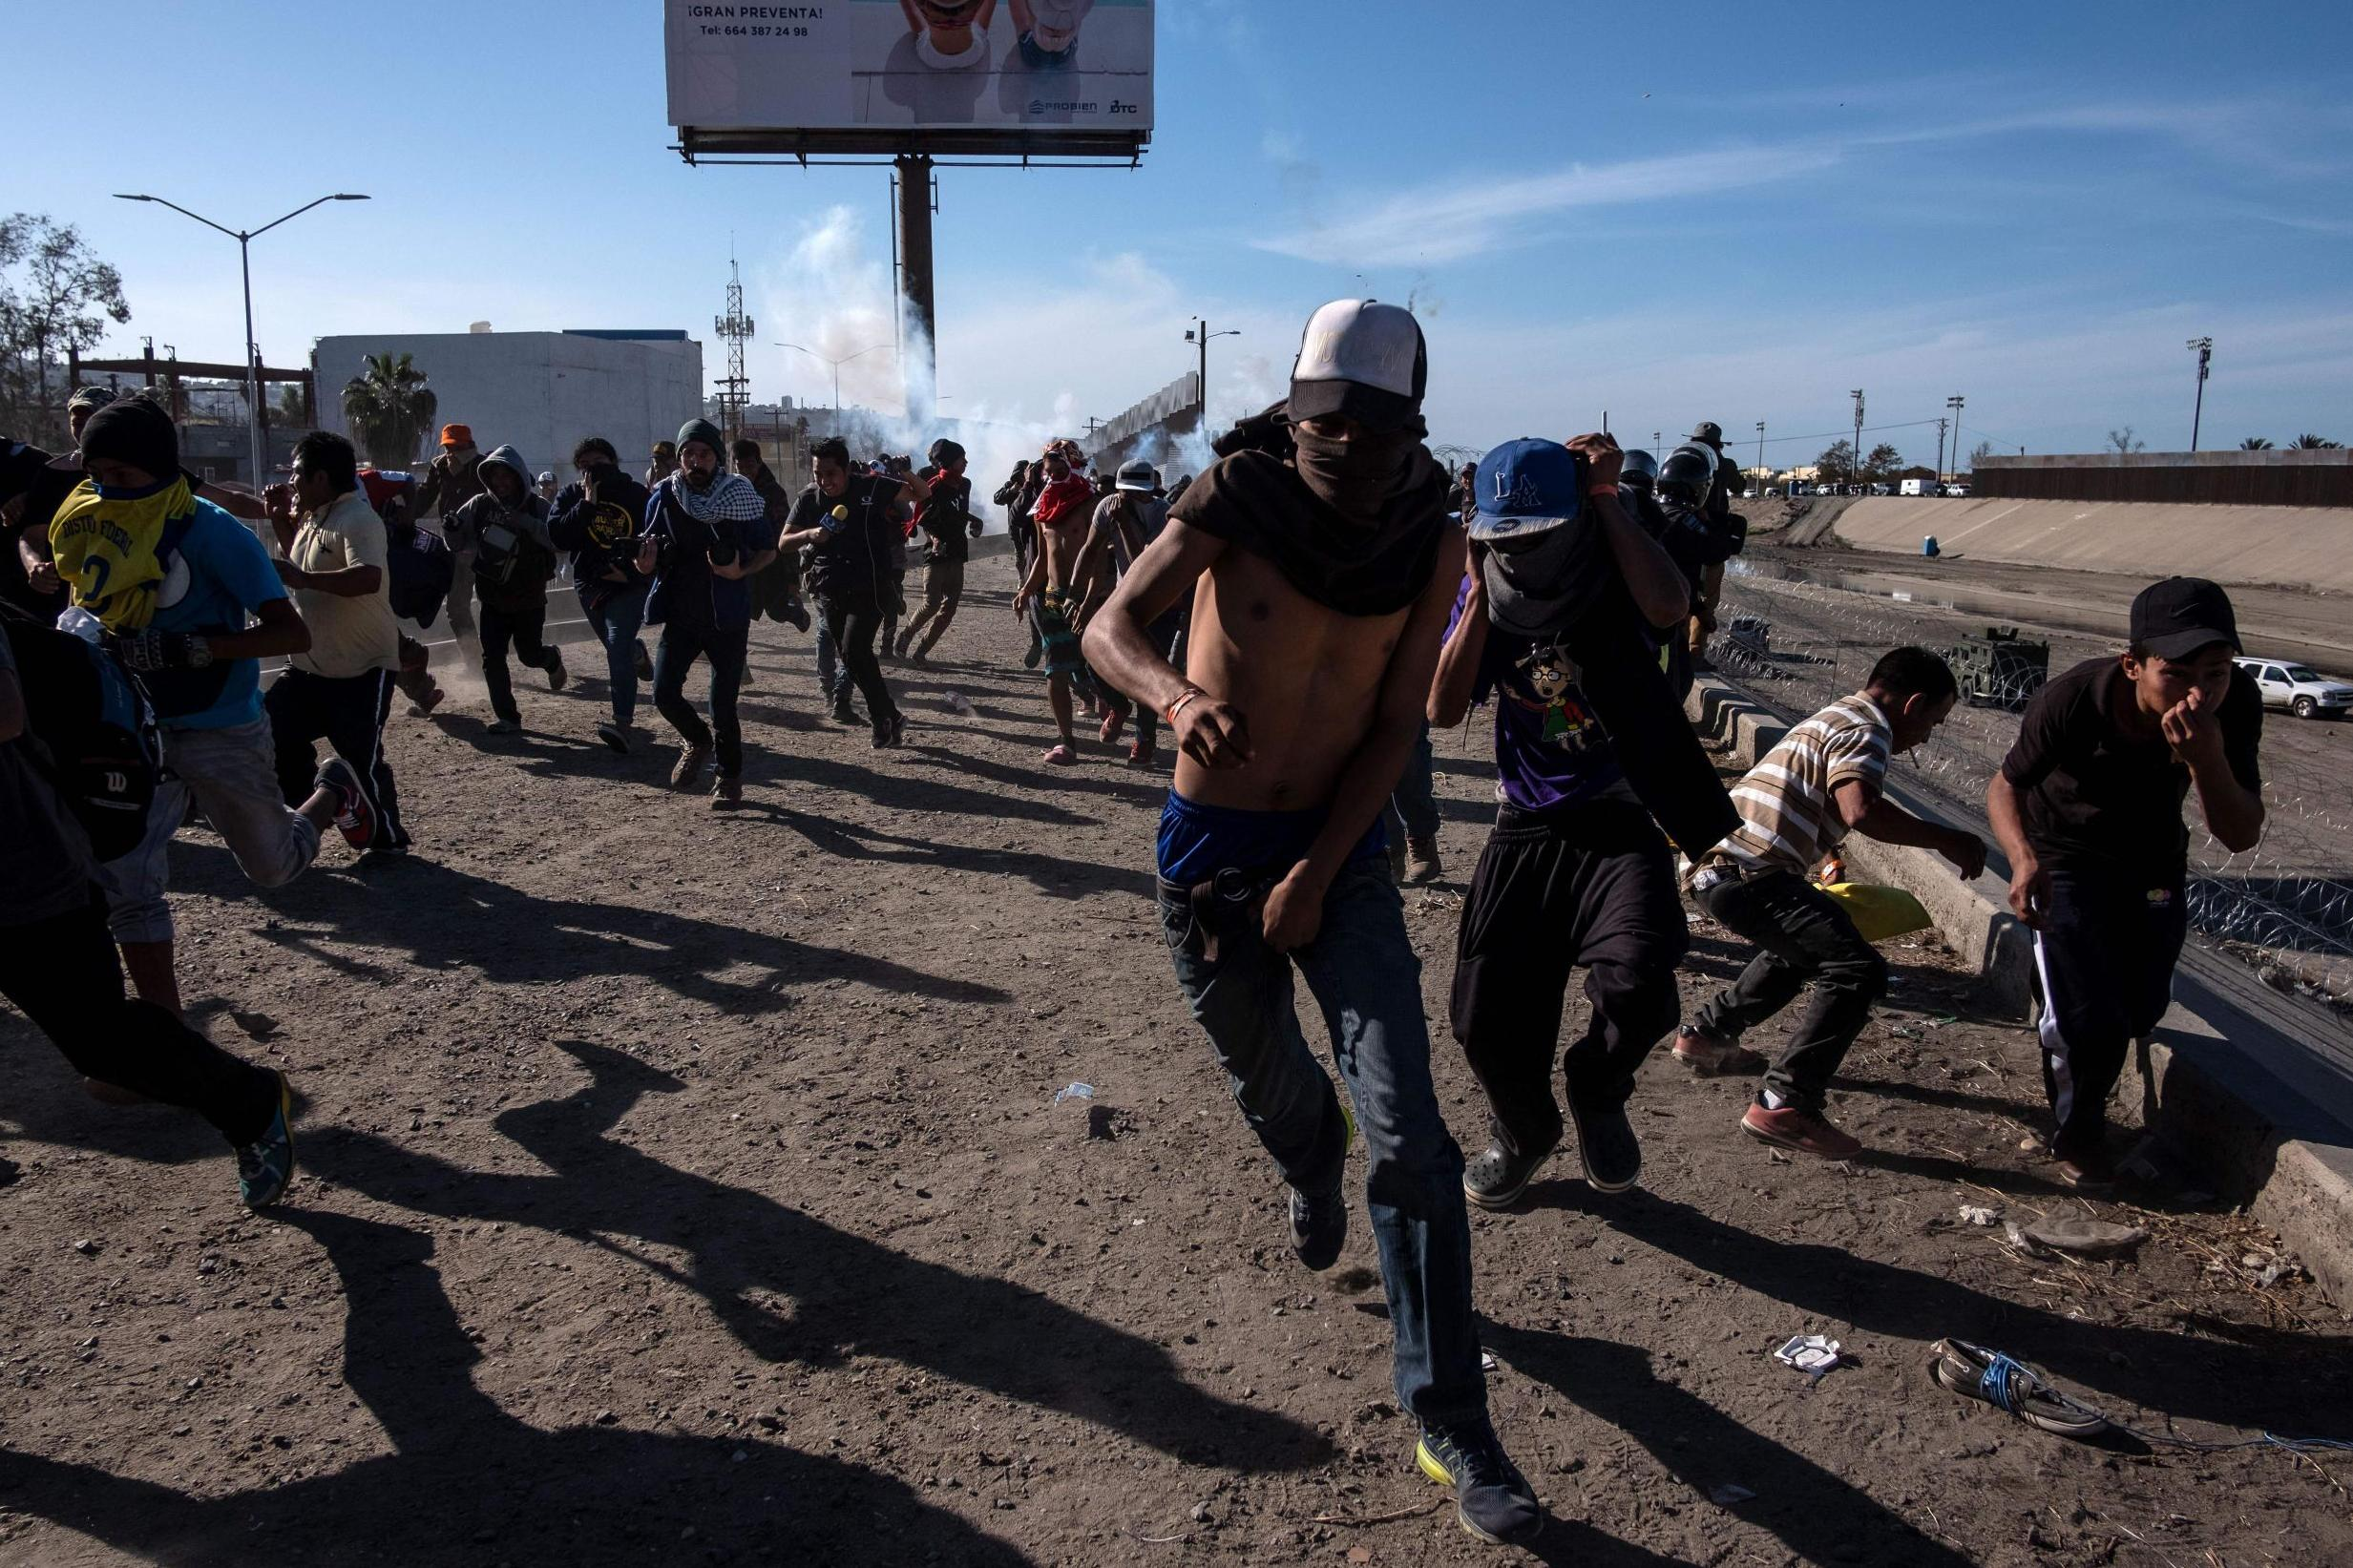 Pepper spray used on migrants 'safe enough to put on nachos and eat', former US border patrol chief claims